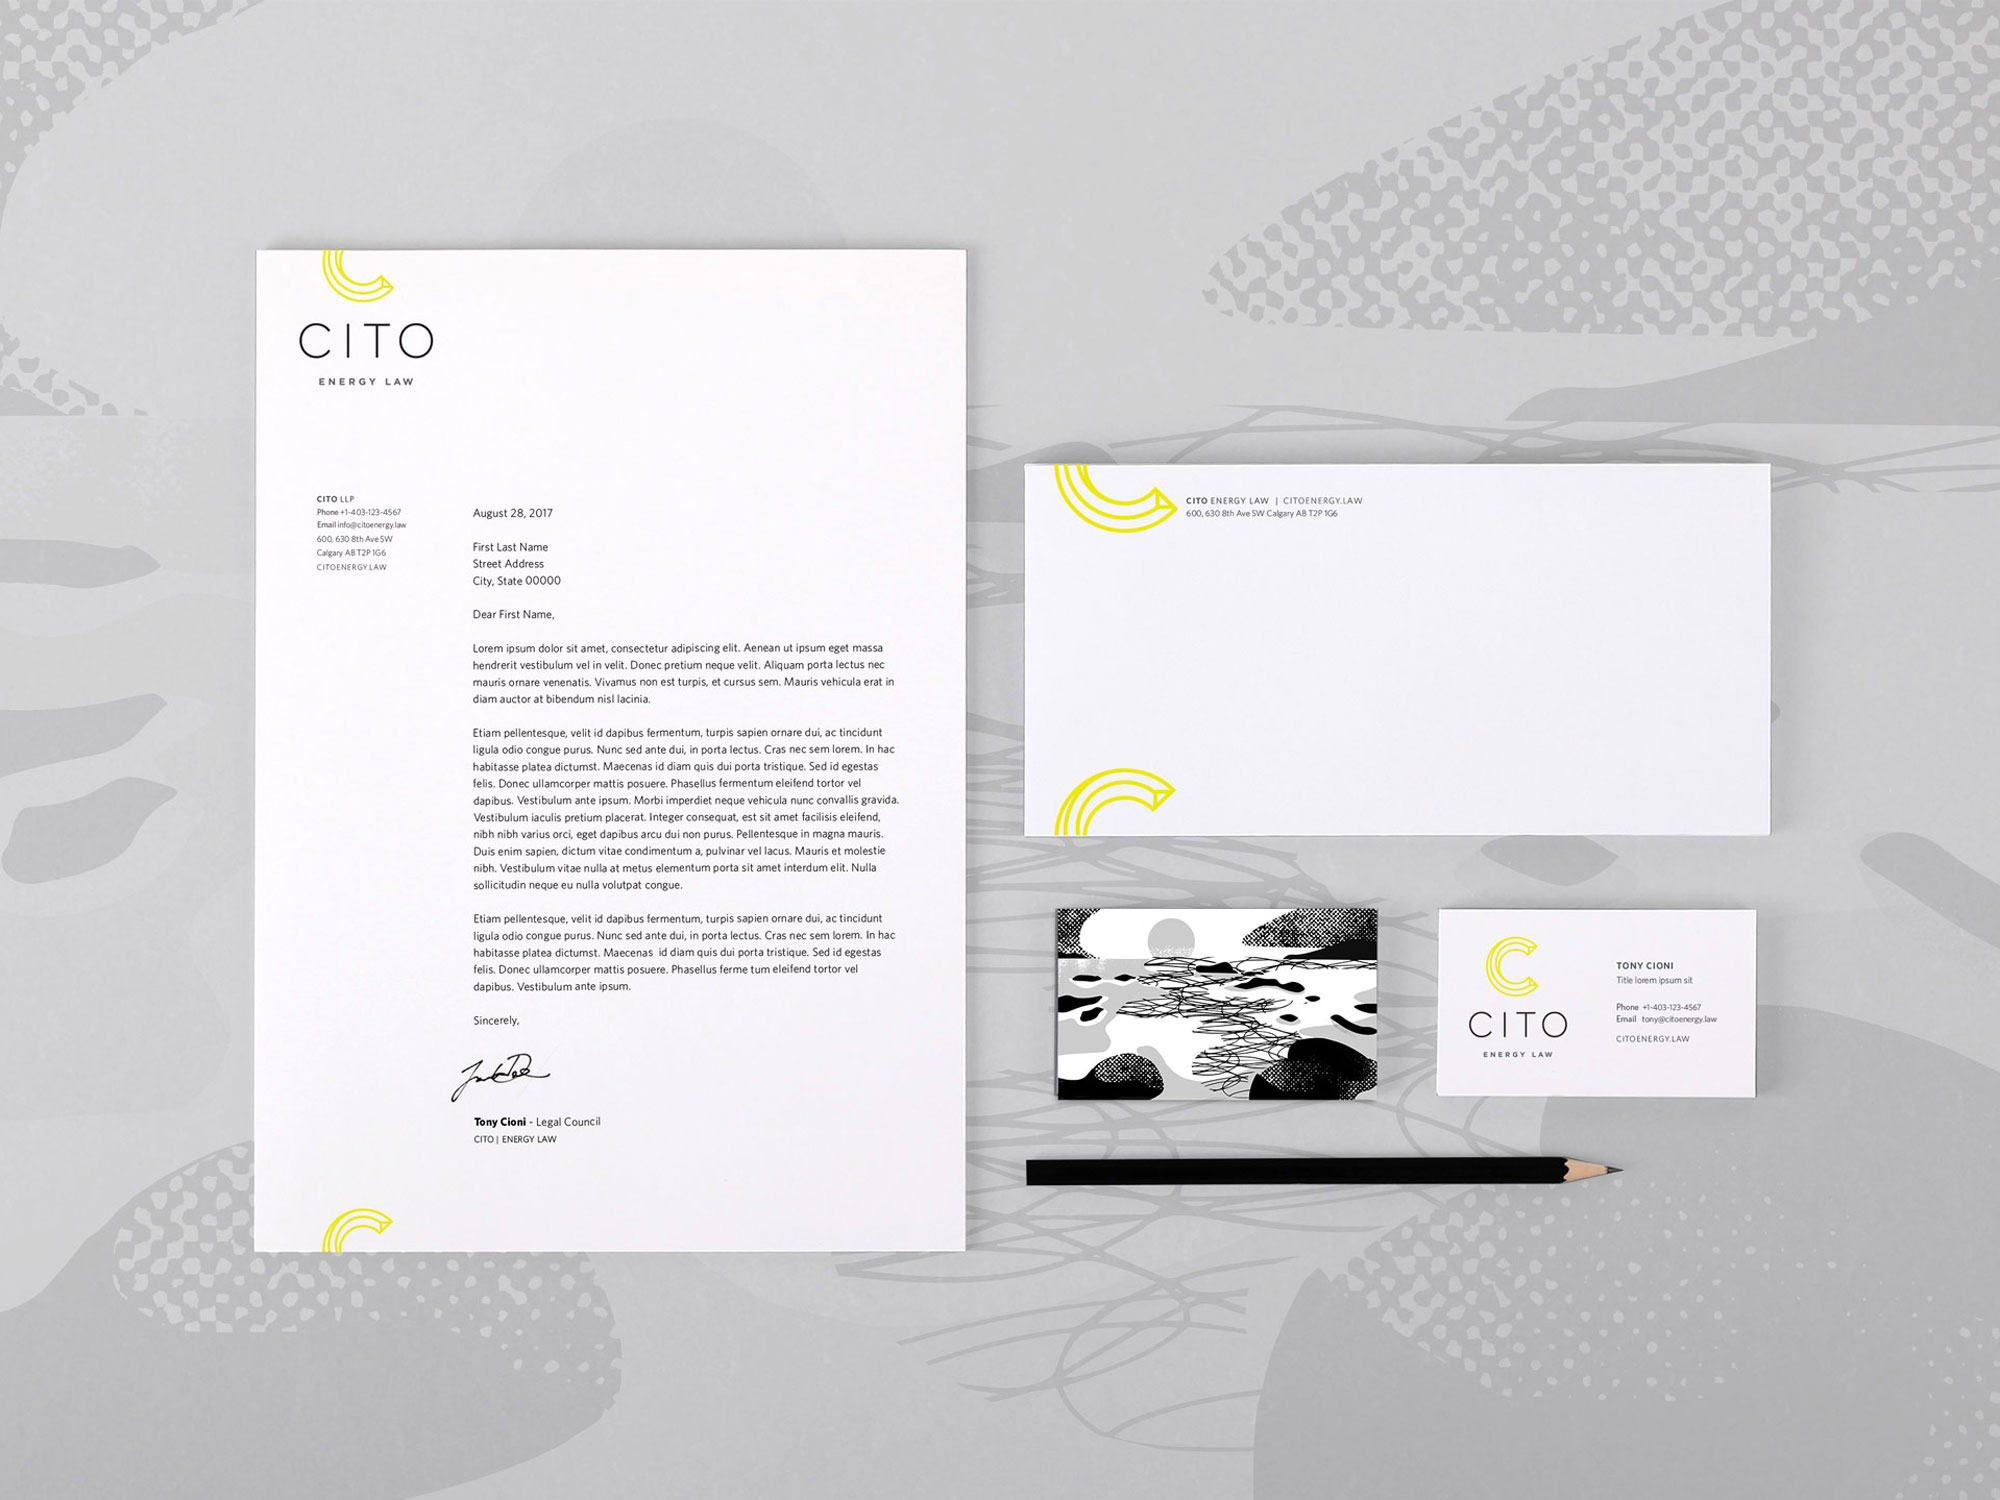 Unique Cito Energy Law corporate letterhead in Calgary featuring custom black and white illustrations from around the world